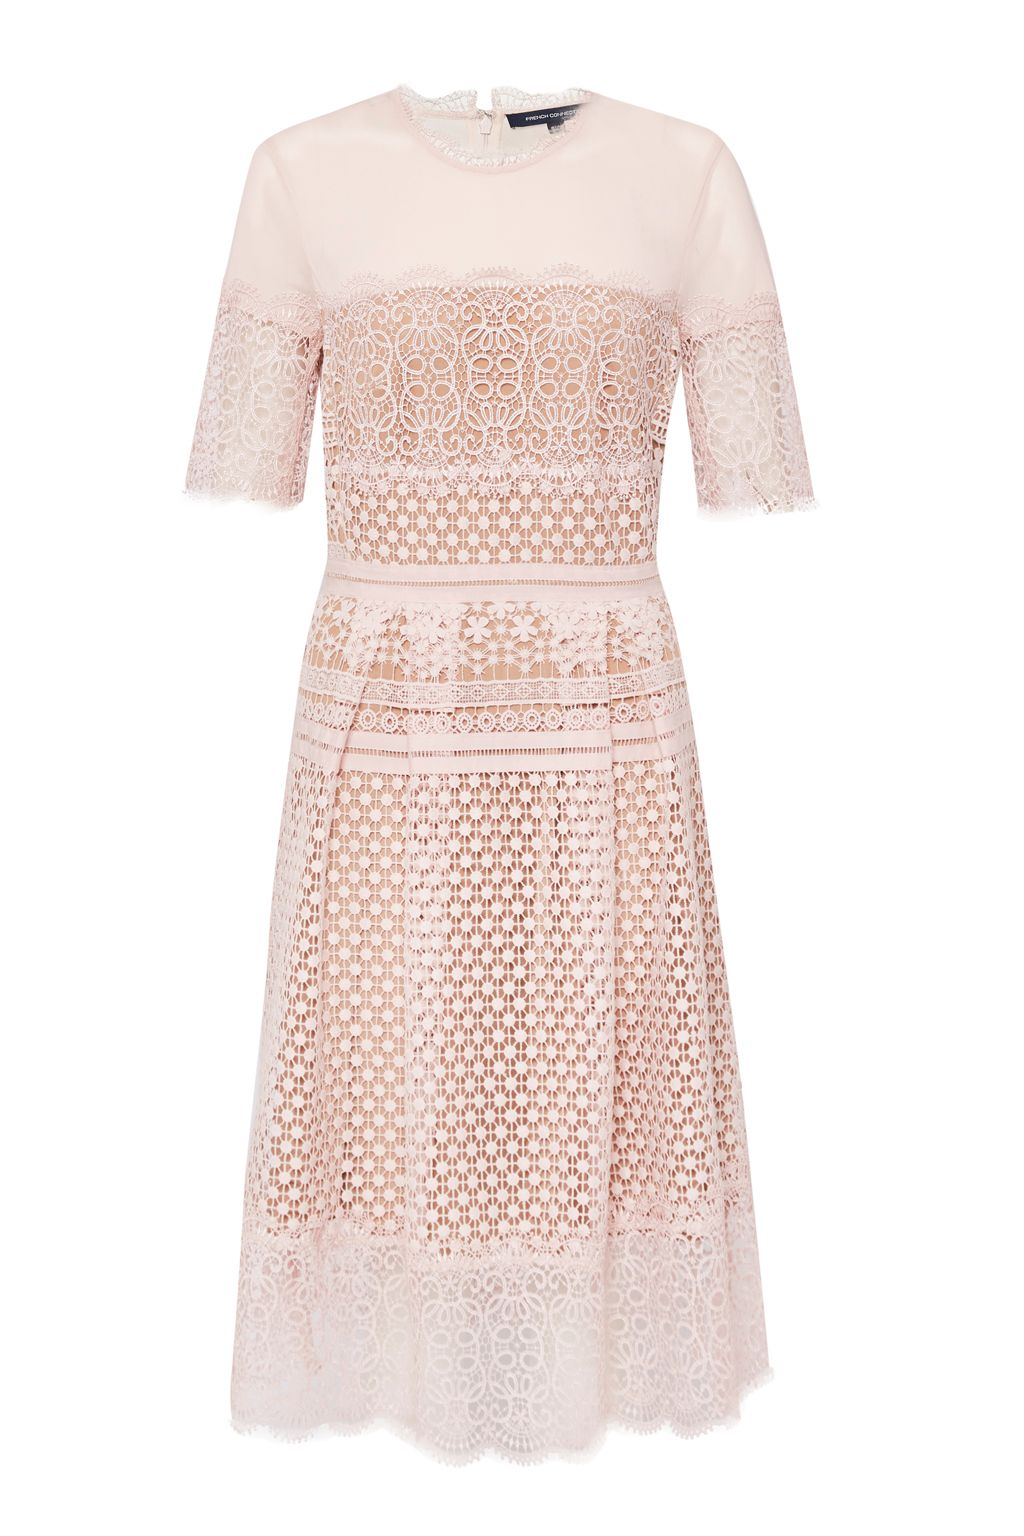 French Connection Anouk Lace Dress, Pink